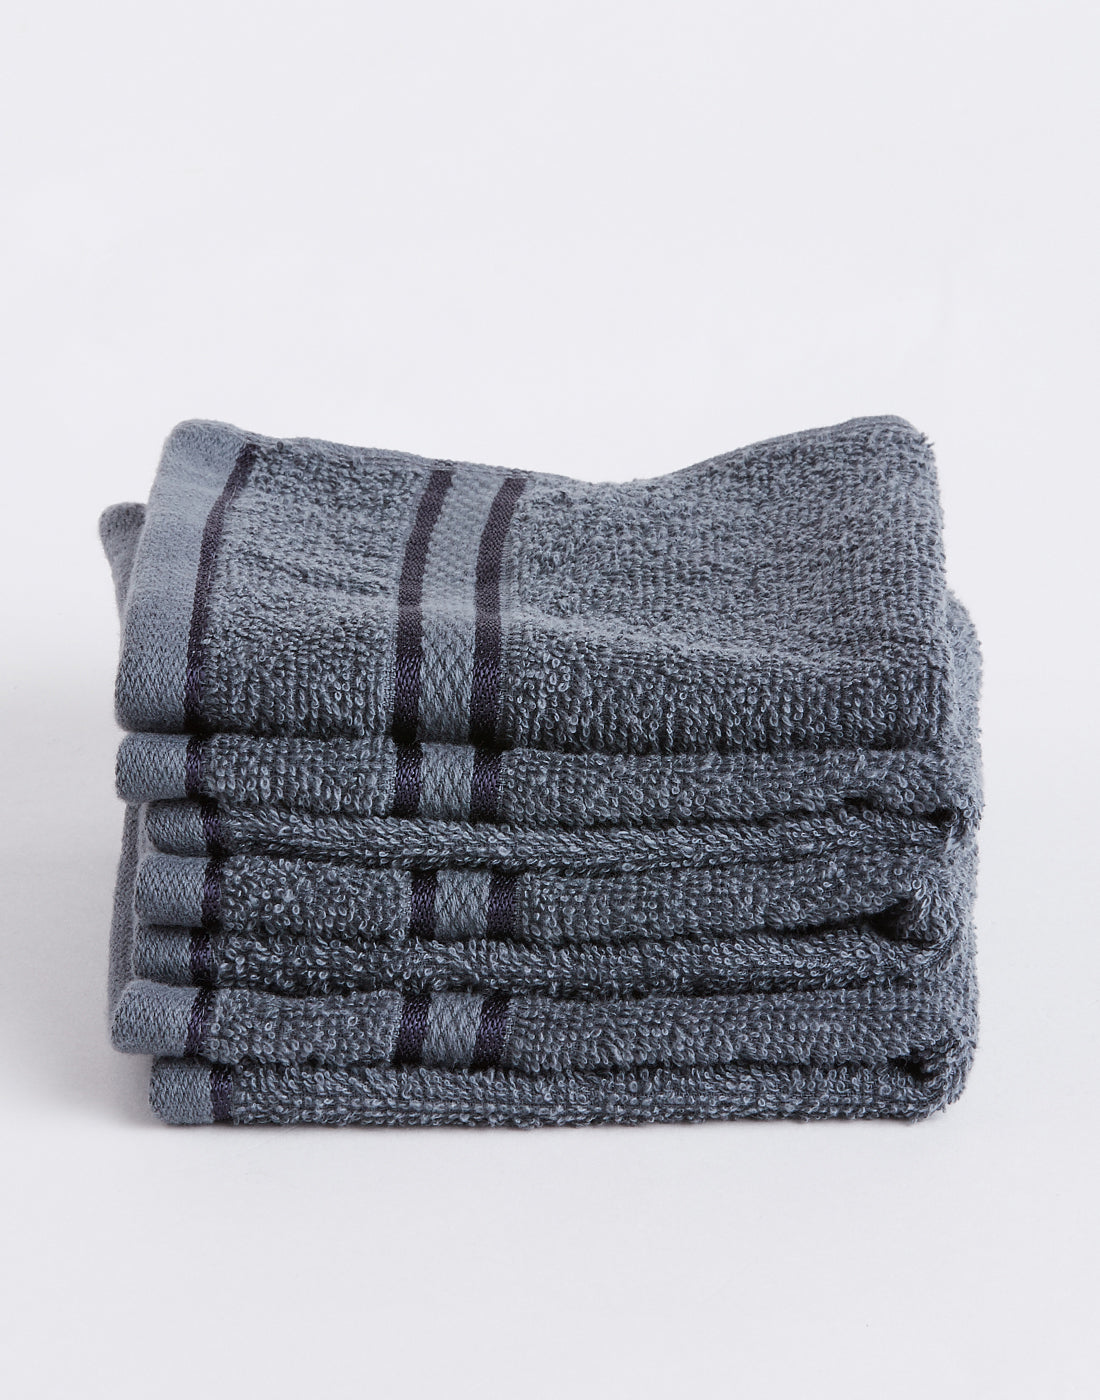 Octave Charcoal Grey Set of 4 Cotton Face Towels